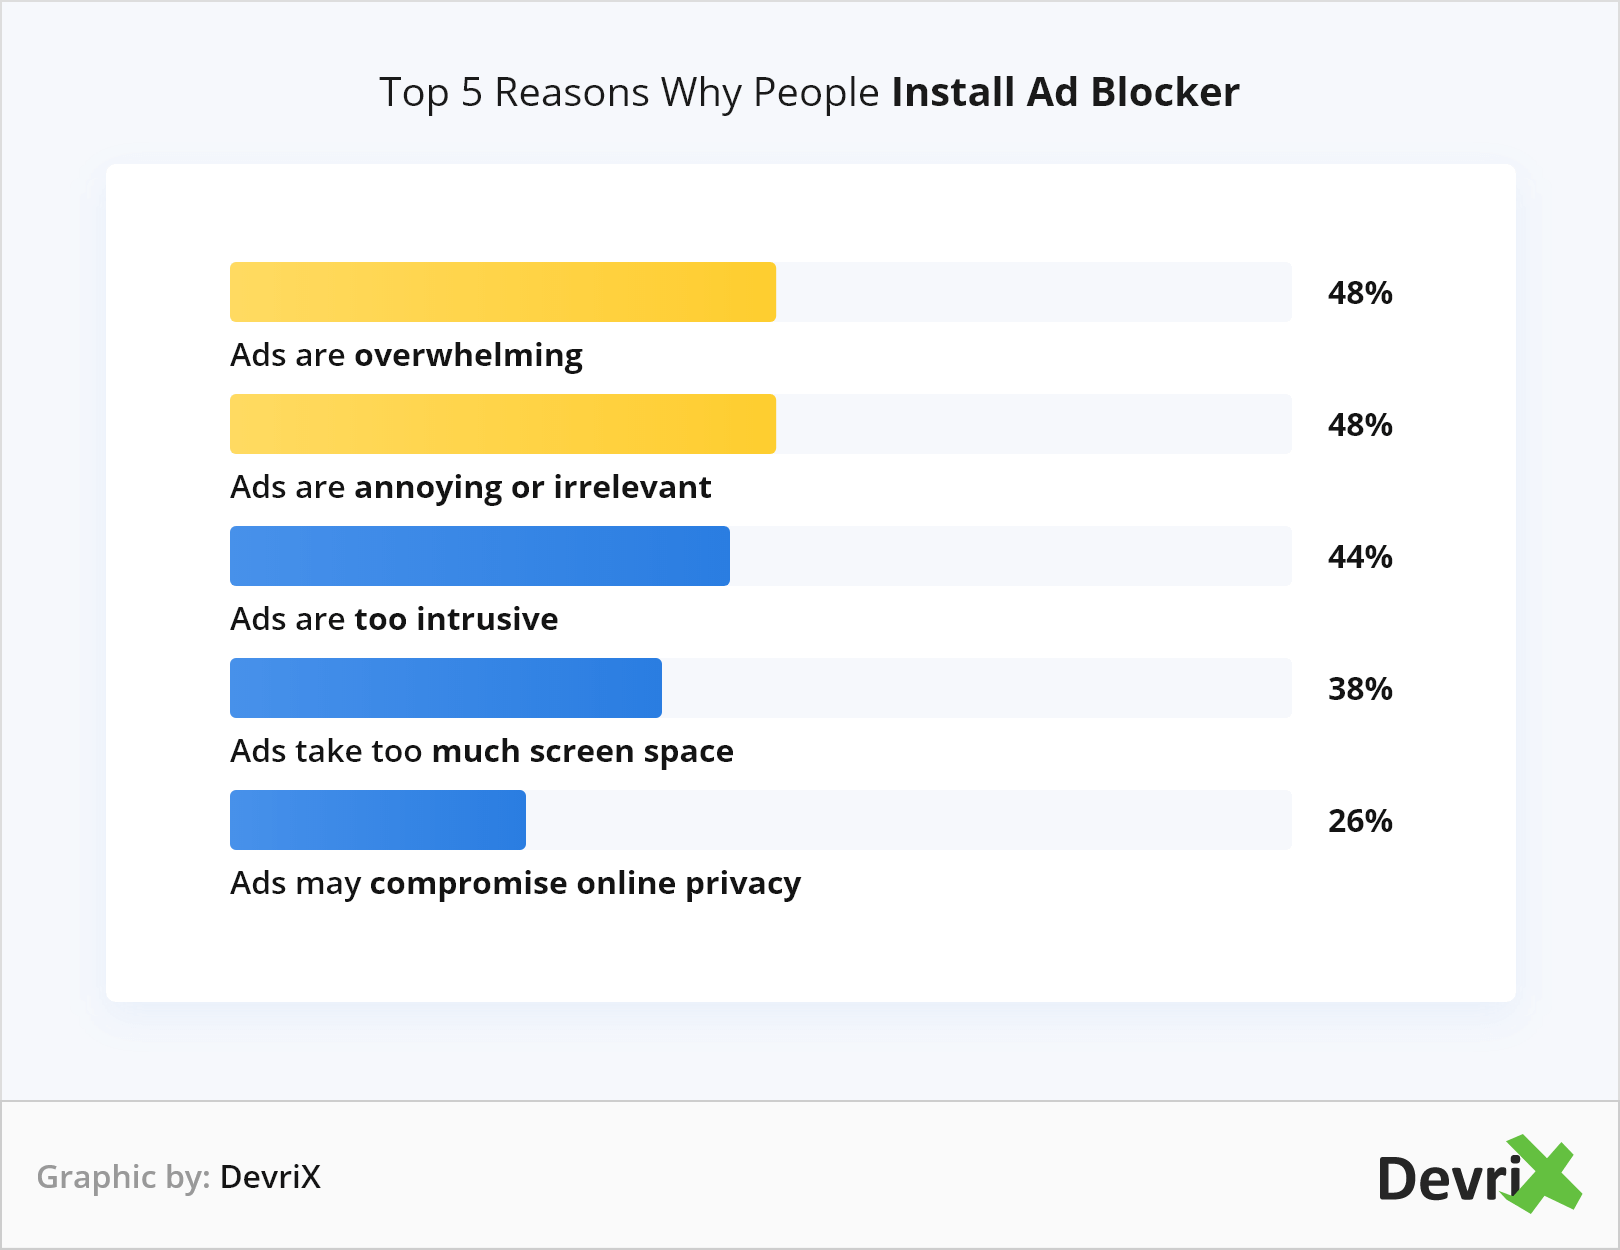 Top 5 Reasons Why People Install Ad Blocker